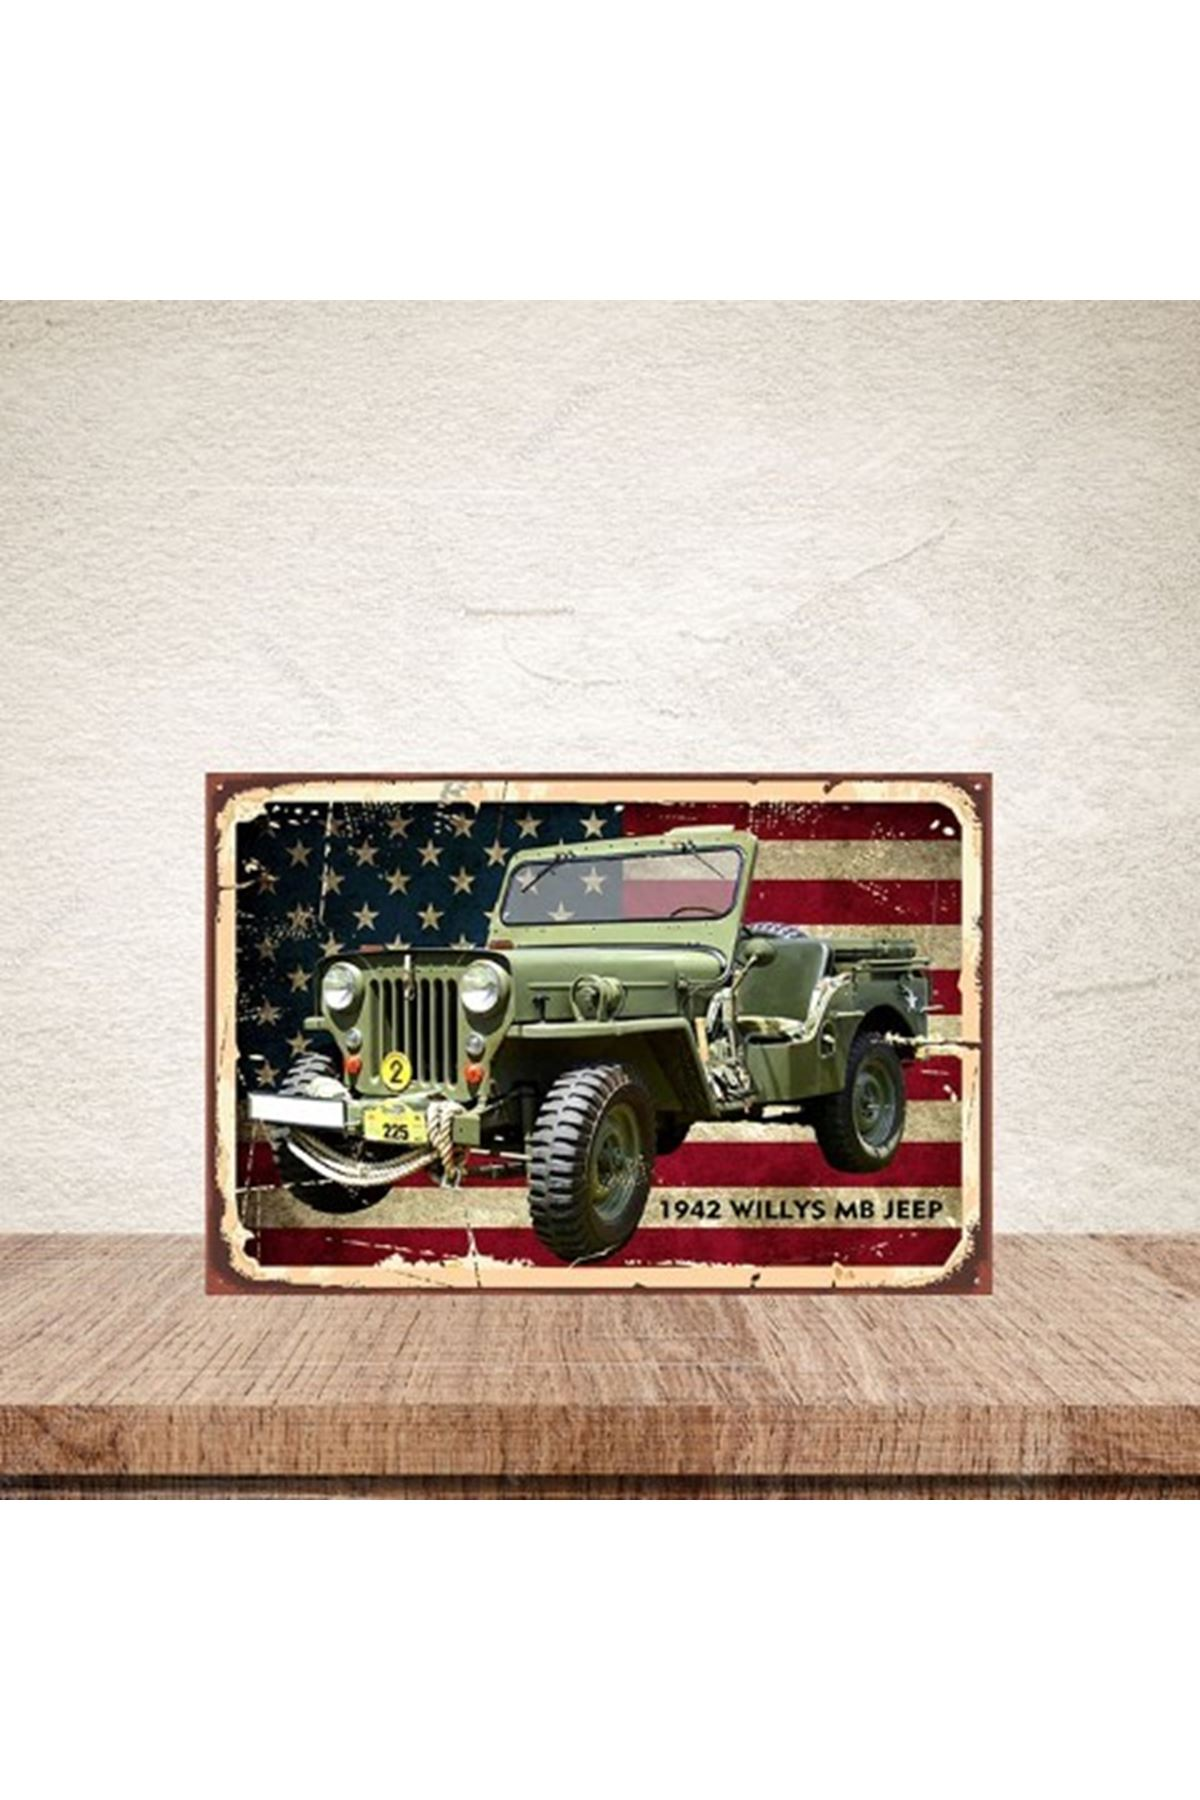 1942 WİLLYS MB JEEP - AHŞAP POSTER